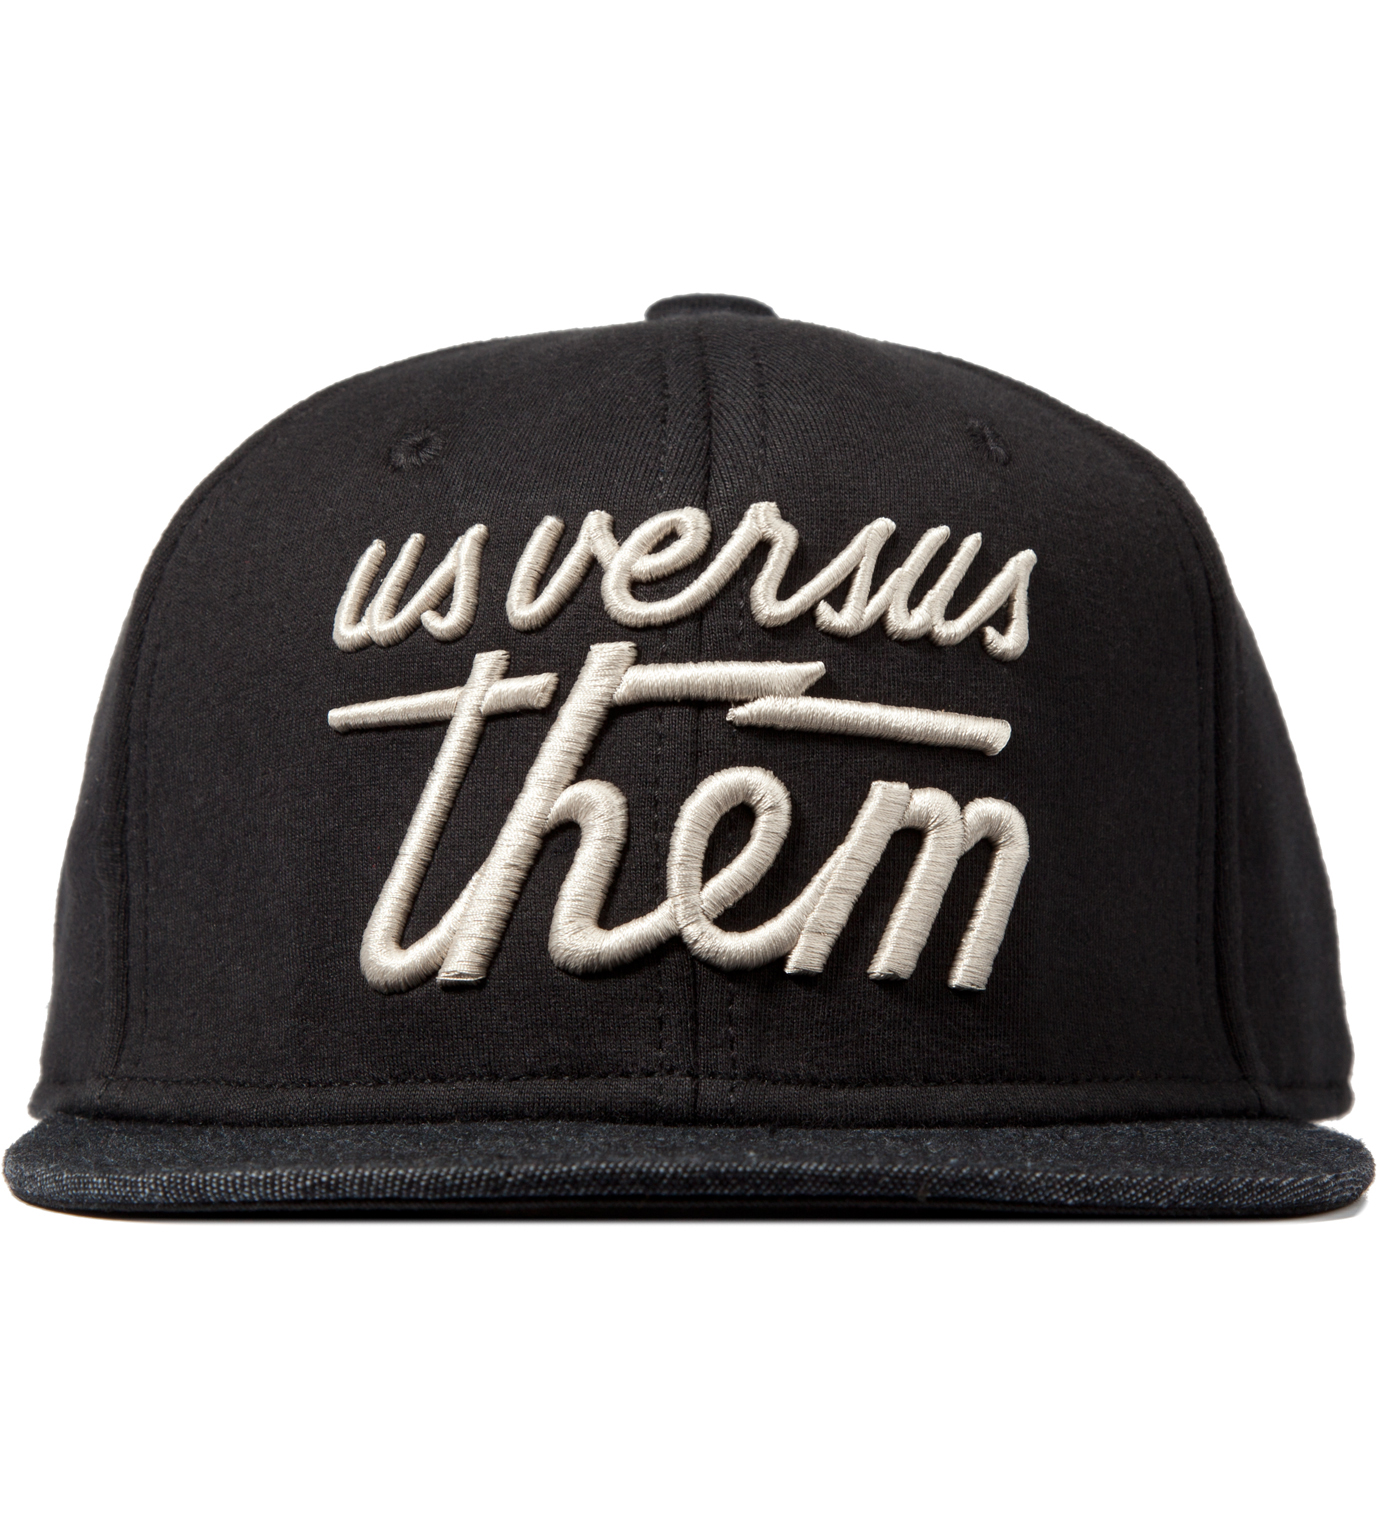 Us Versus Them Black Magnum Fleece Snapback Ballcap